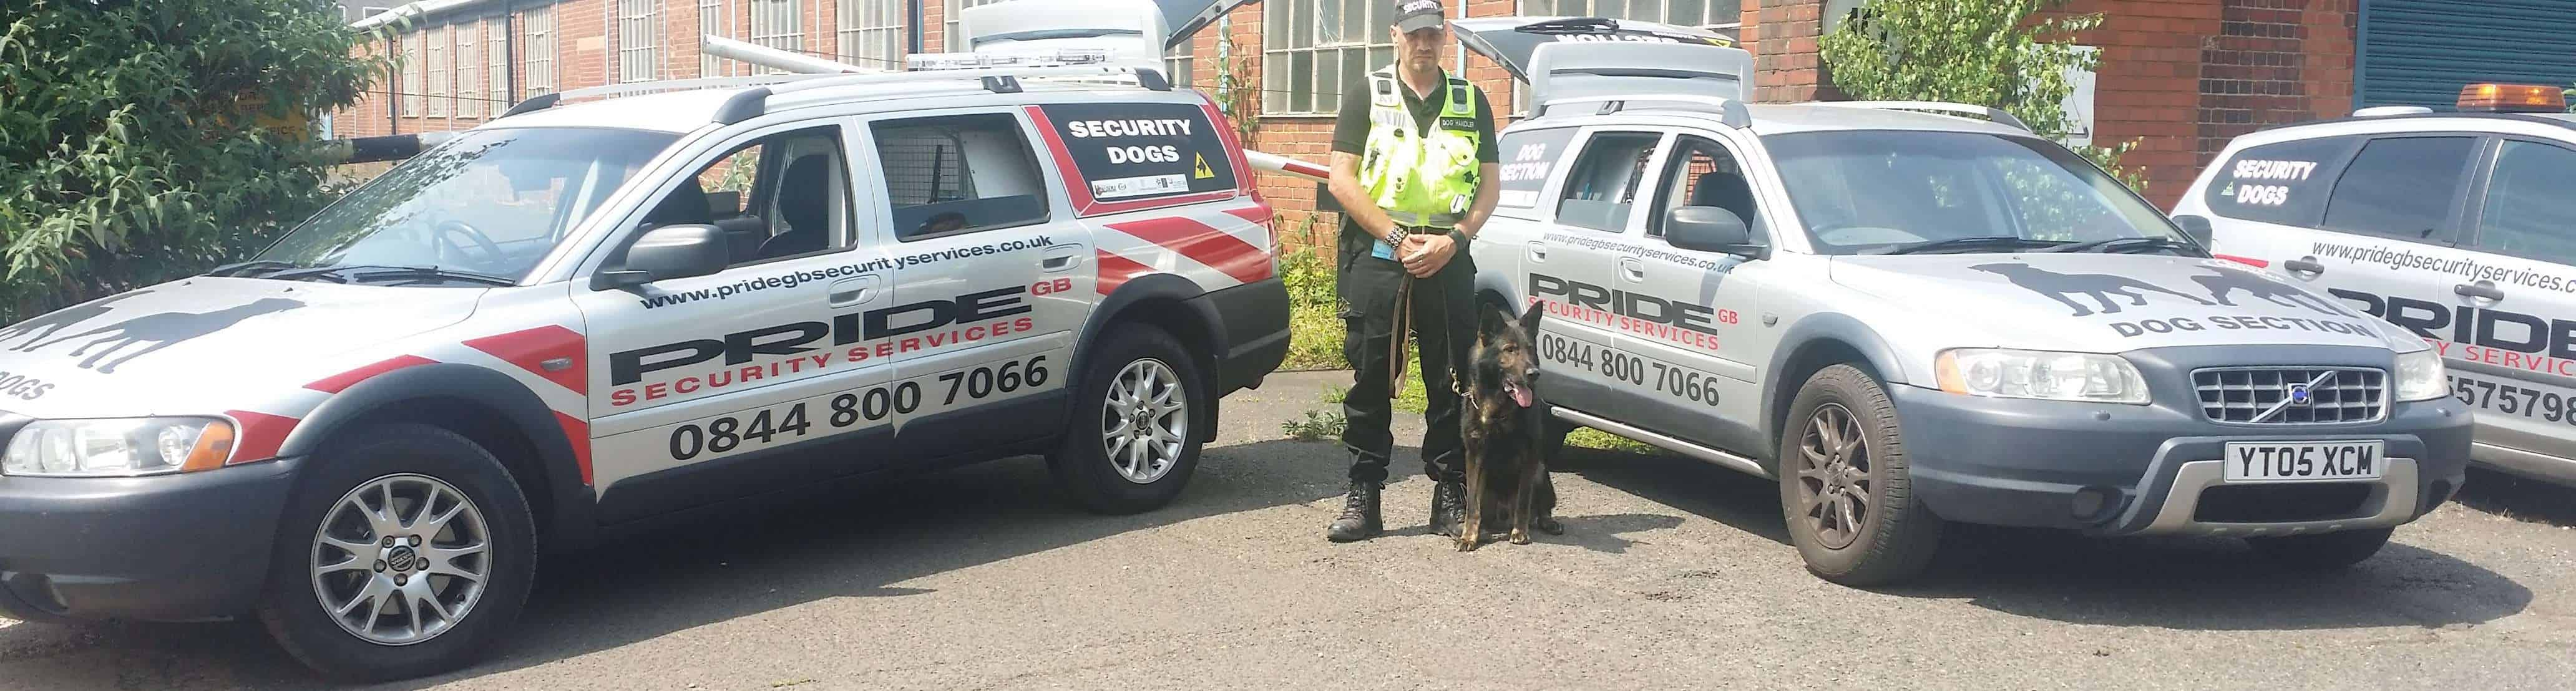 Security Dogs Handlers Tudor Hill